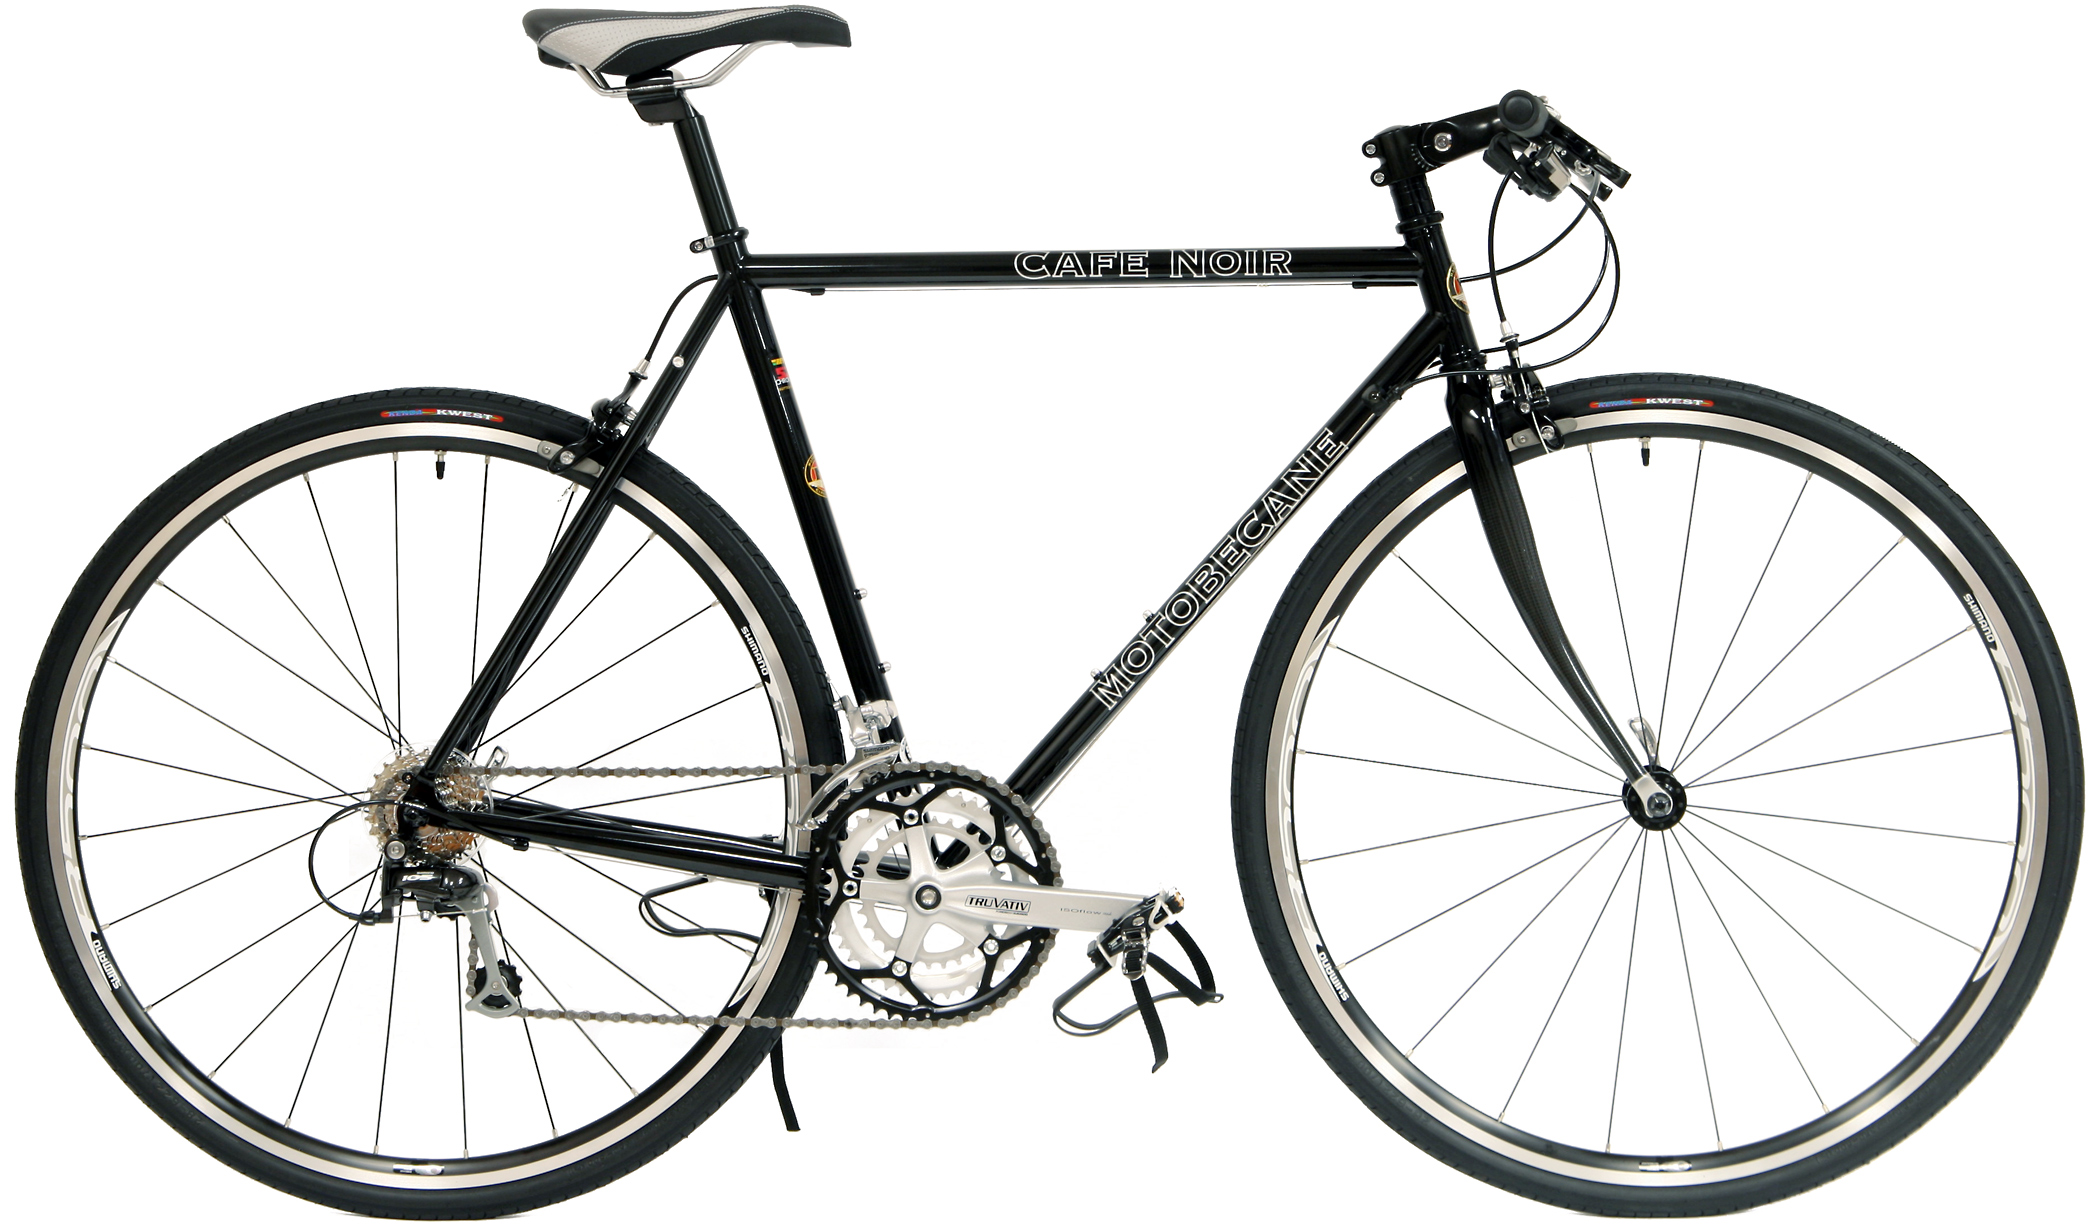 Hybrid Bicycles Save Up To 60 Off New Hybrid Bicycles Road Bikes Cafe Noir